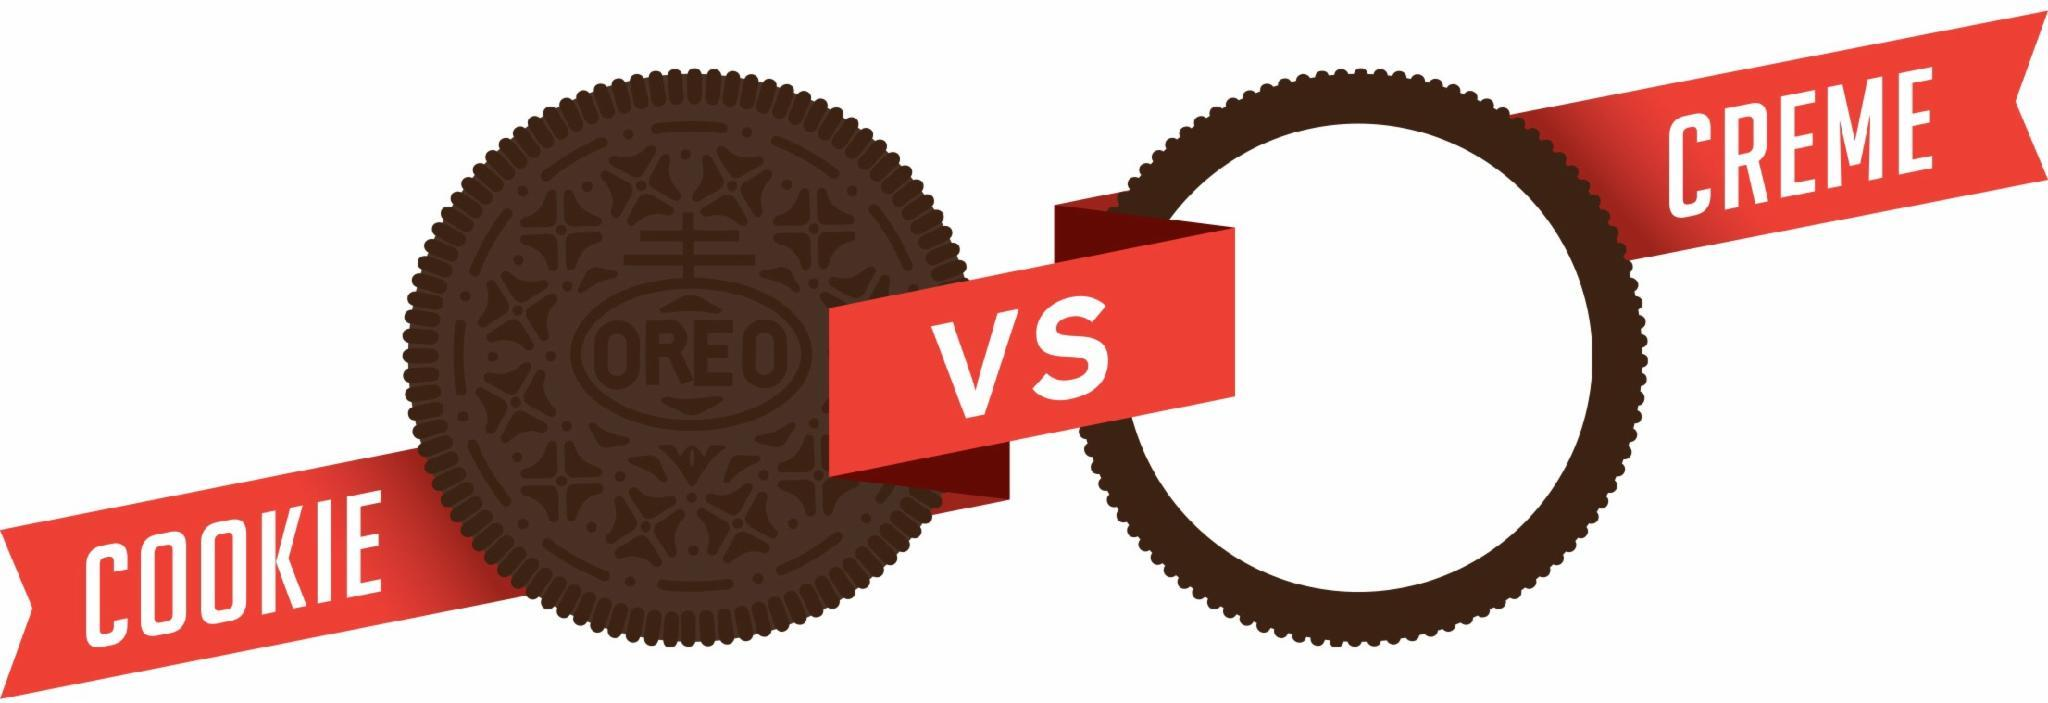 Oreo- Cookie vs Cream